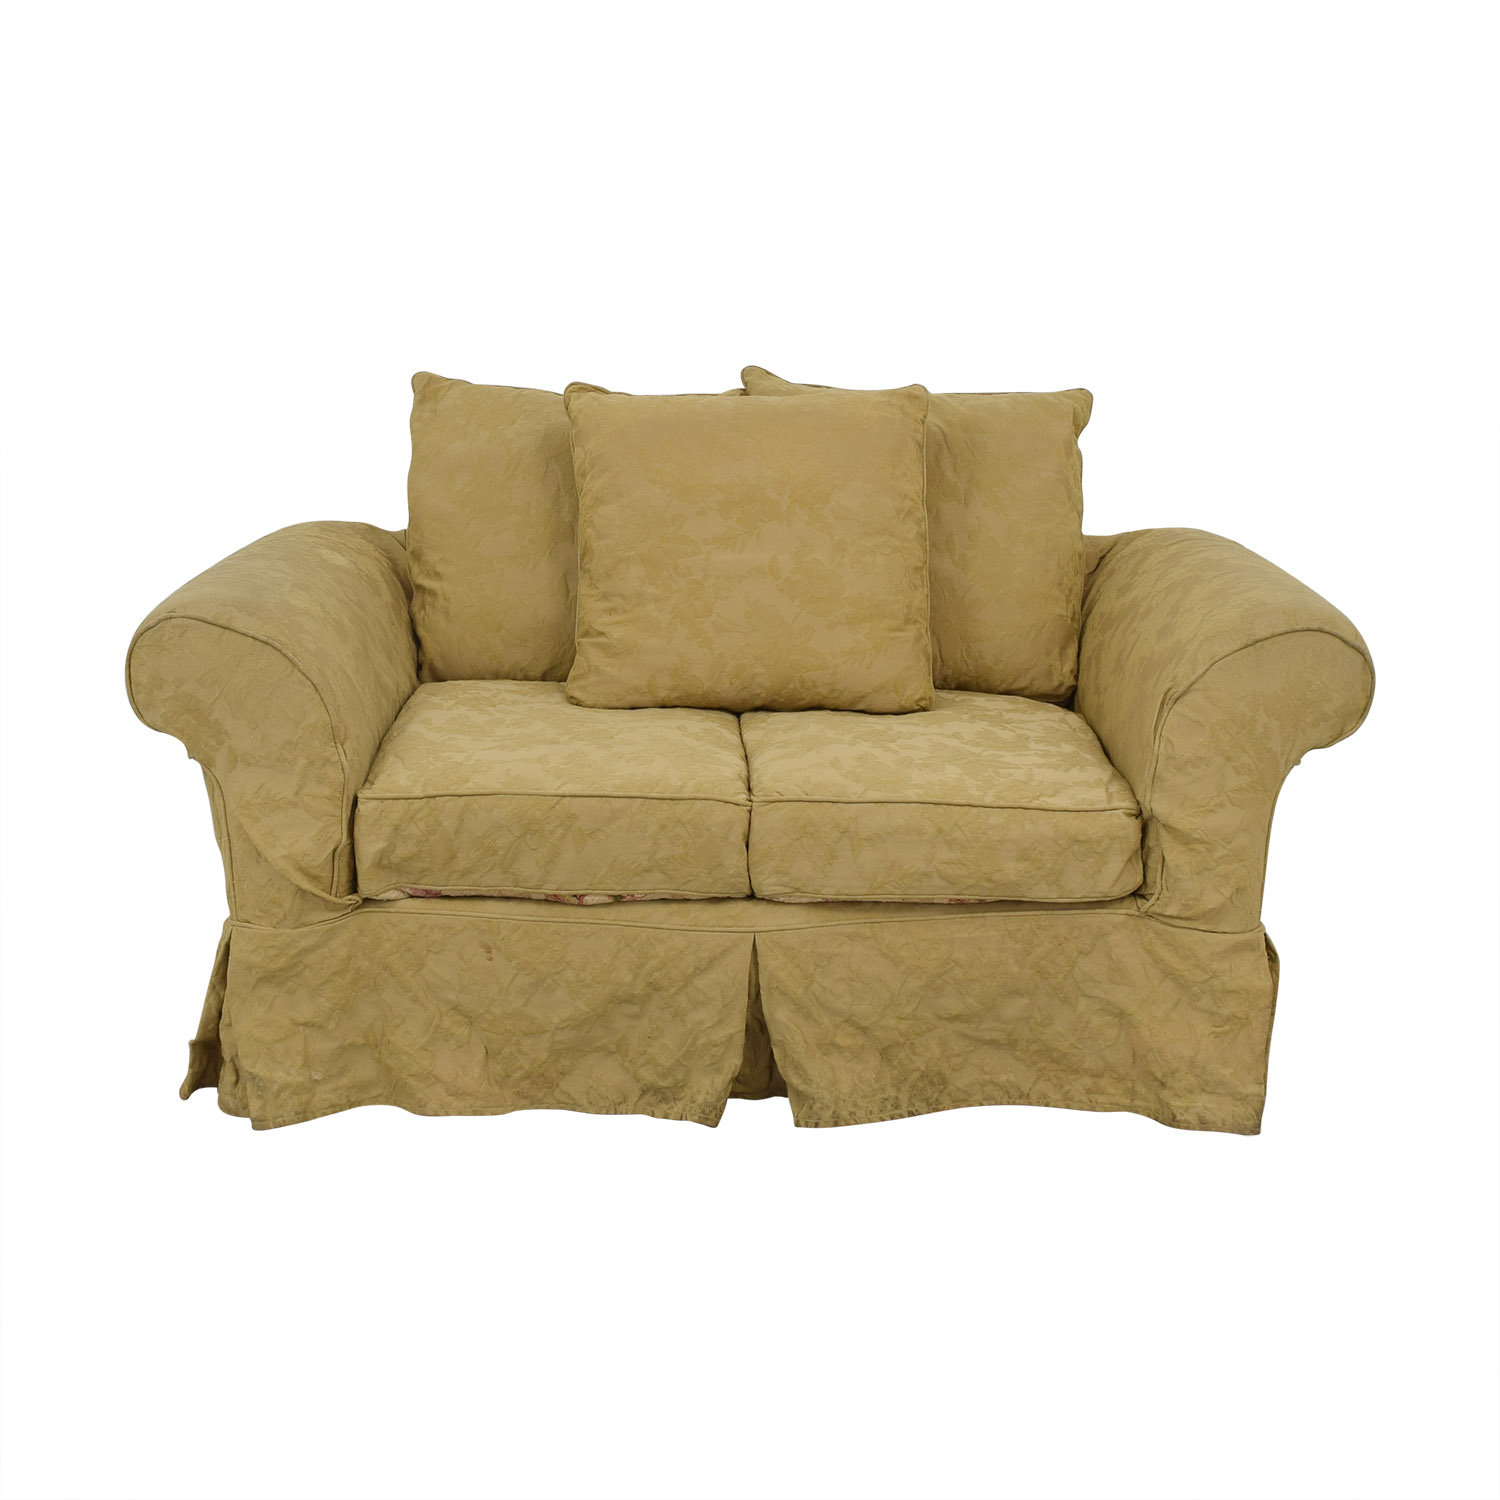 Domain Domain French Country Style Loveseat second hand